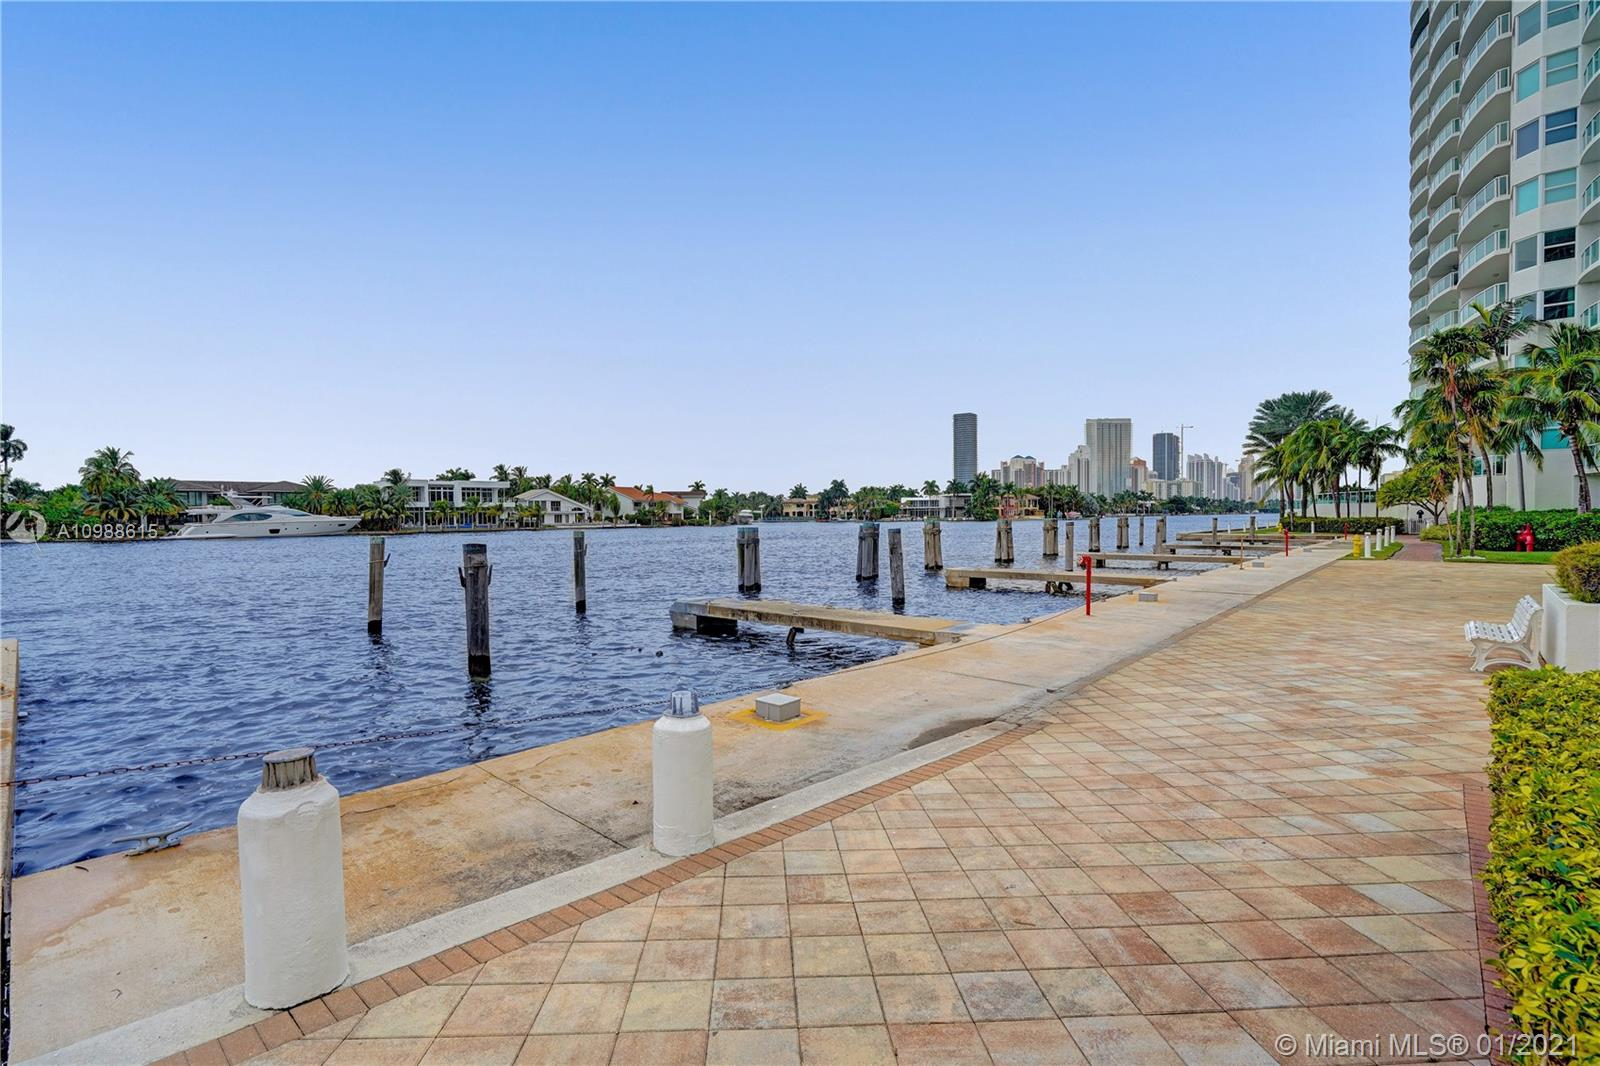 Photo of 20281 Country Club Dr #2407, Aventura, Florida, 33180 - State of the art gym facing the intracosatal.